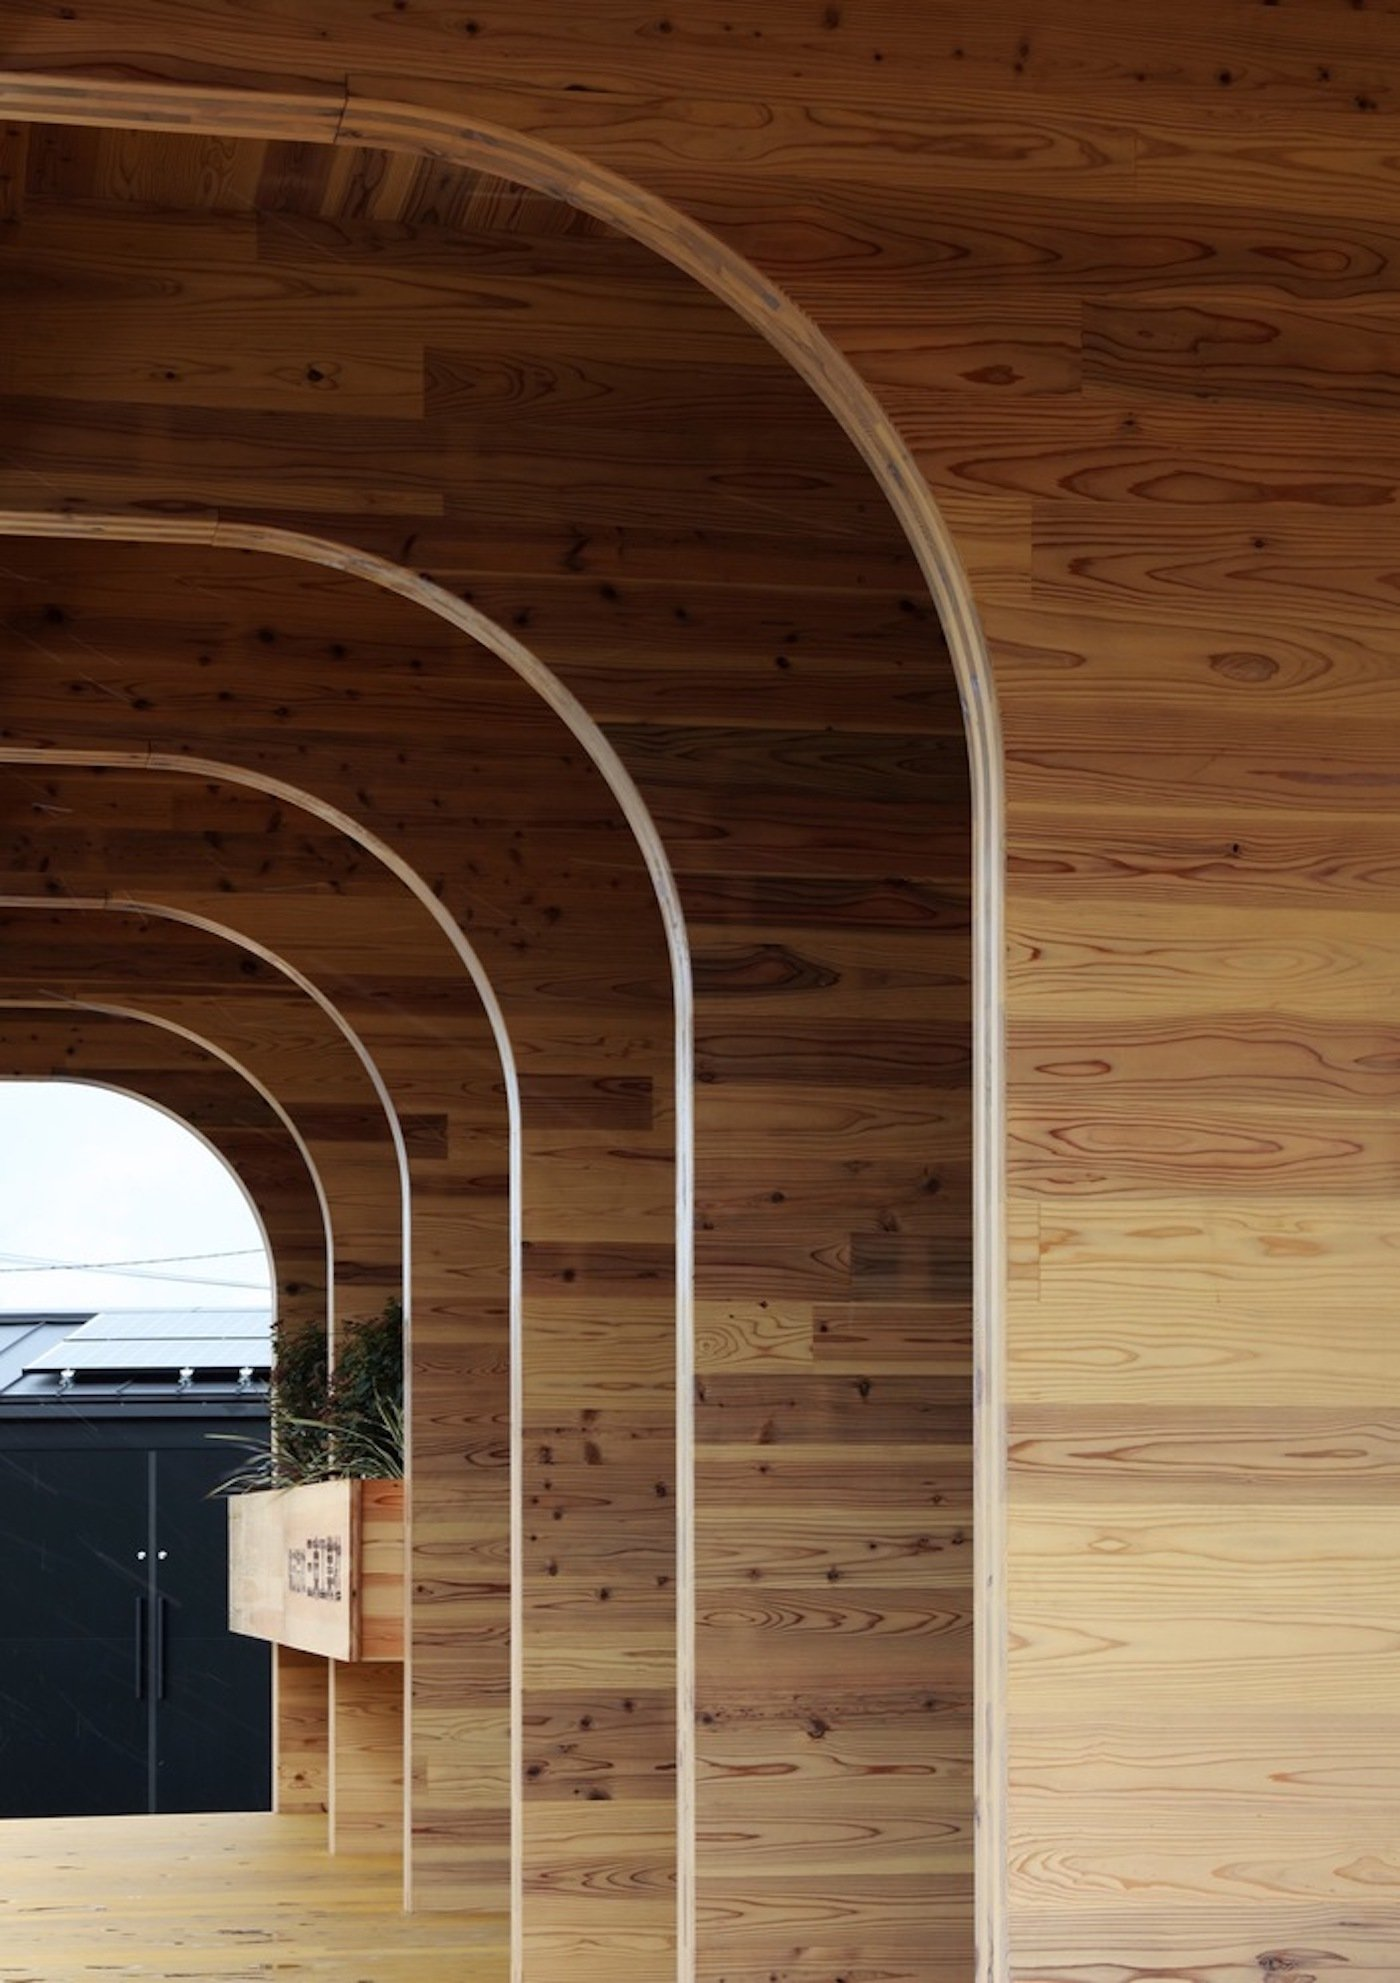 Arched CLT cross laminated timber